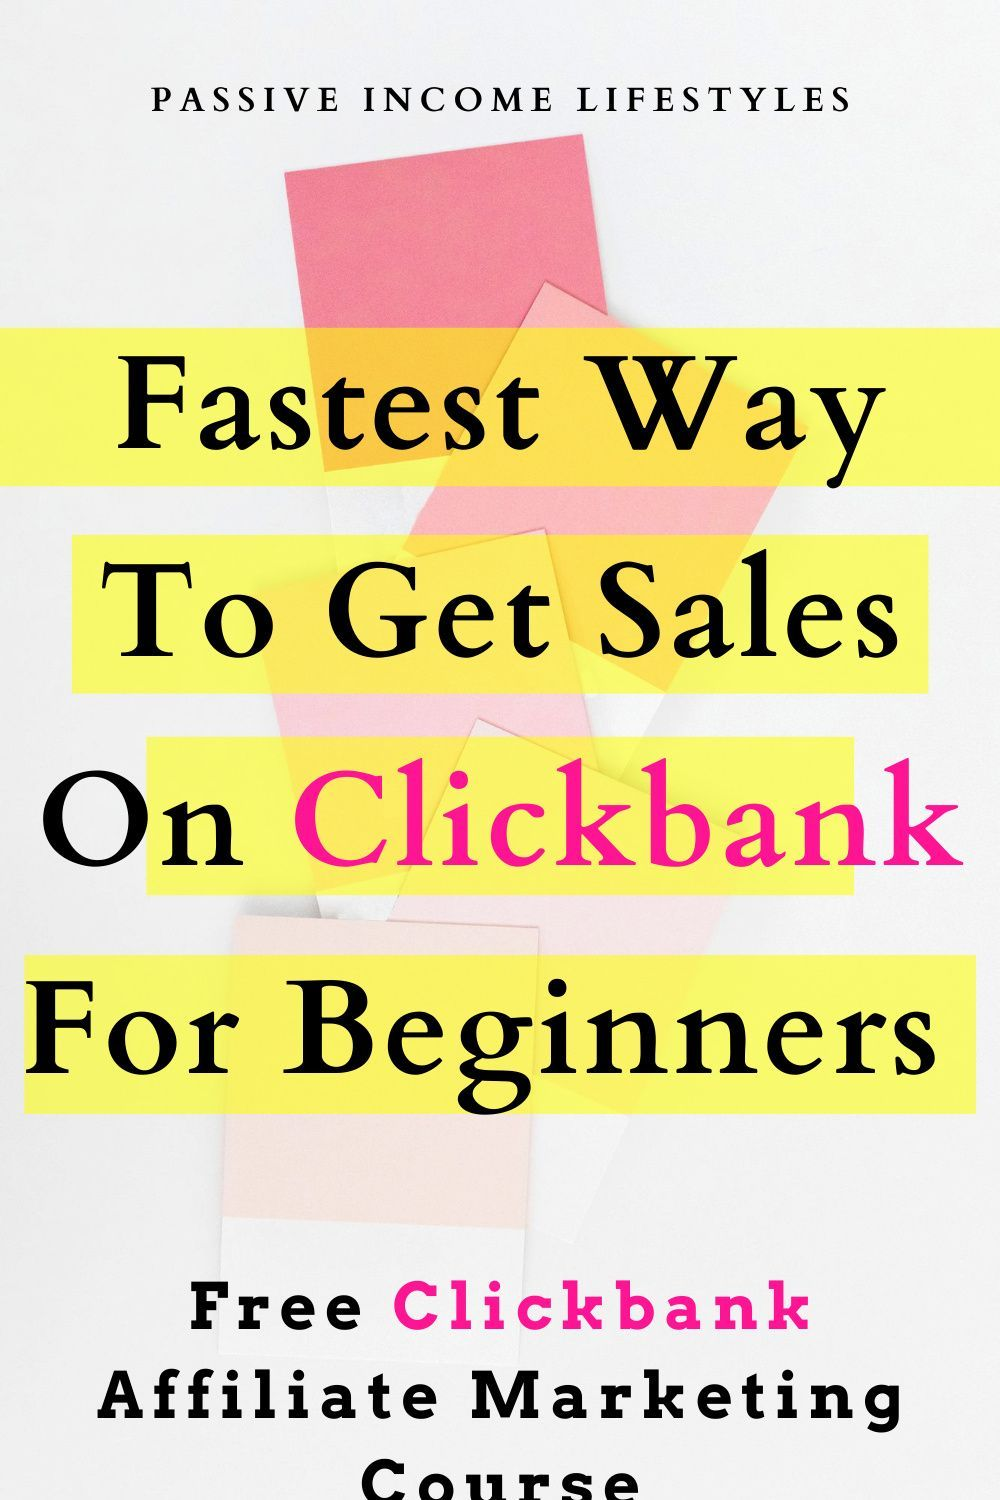 Fastest Way To Get Sales On Clickbank For Beginner